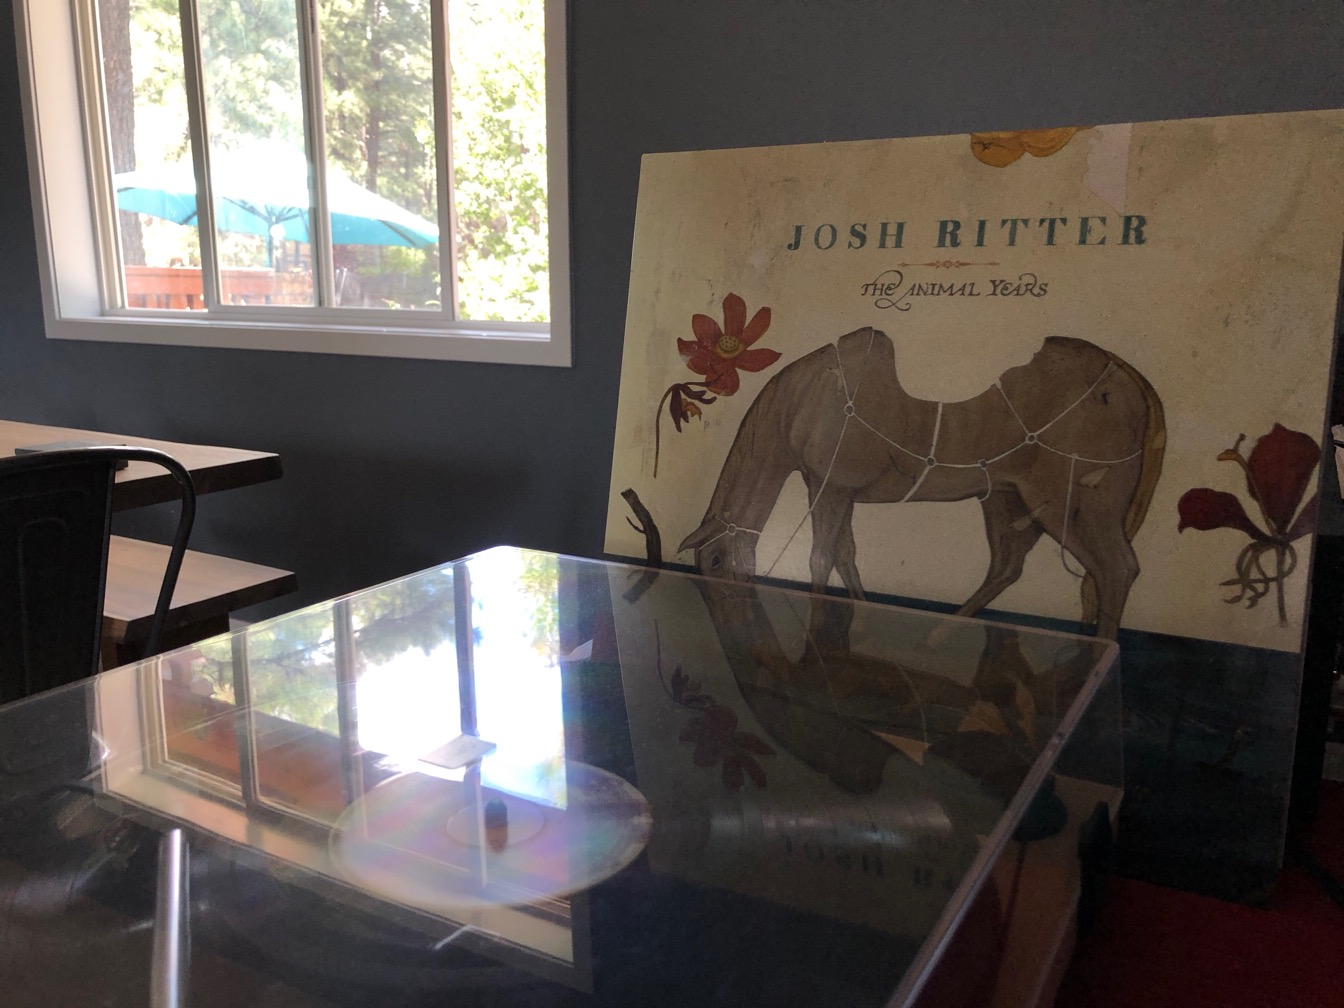 A picture of a turntable with Josh Ritter's album Animal Yeats next to it.